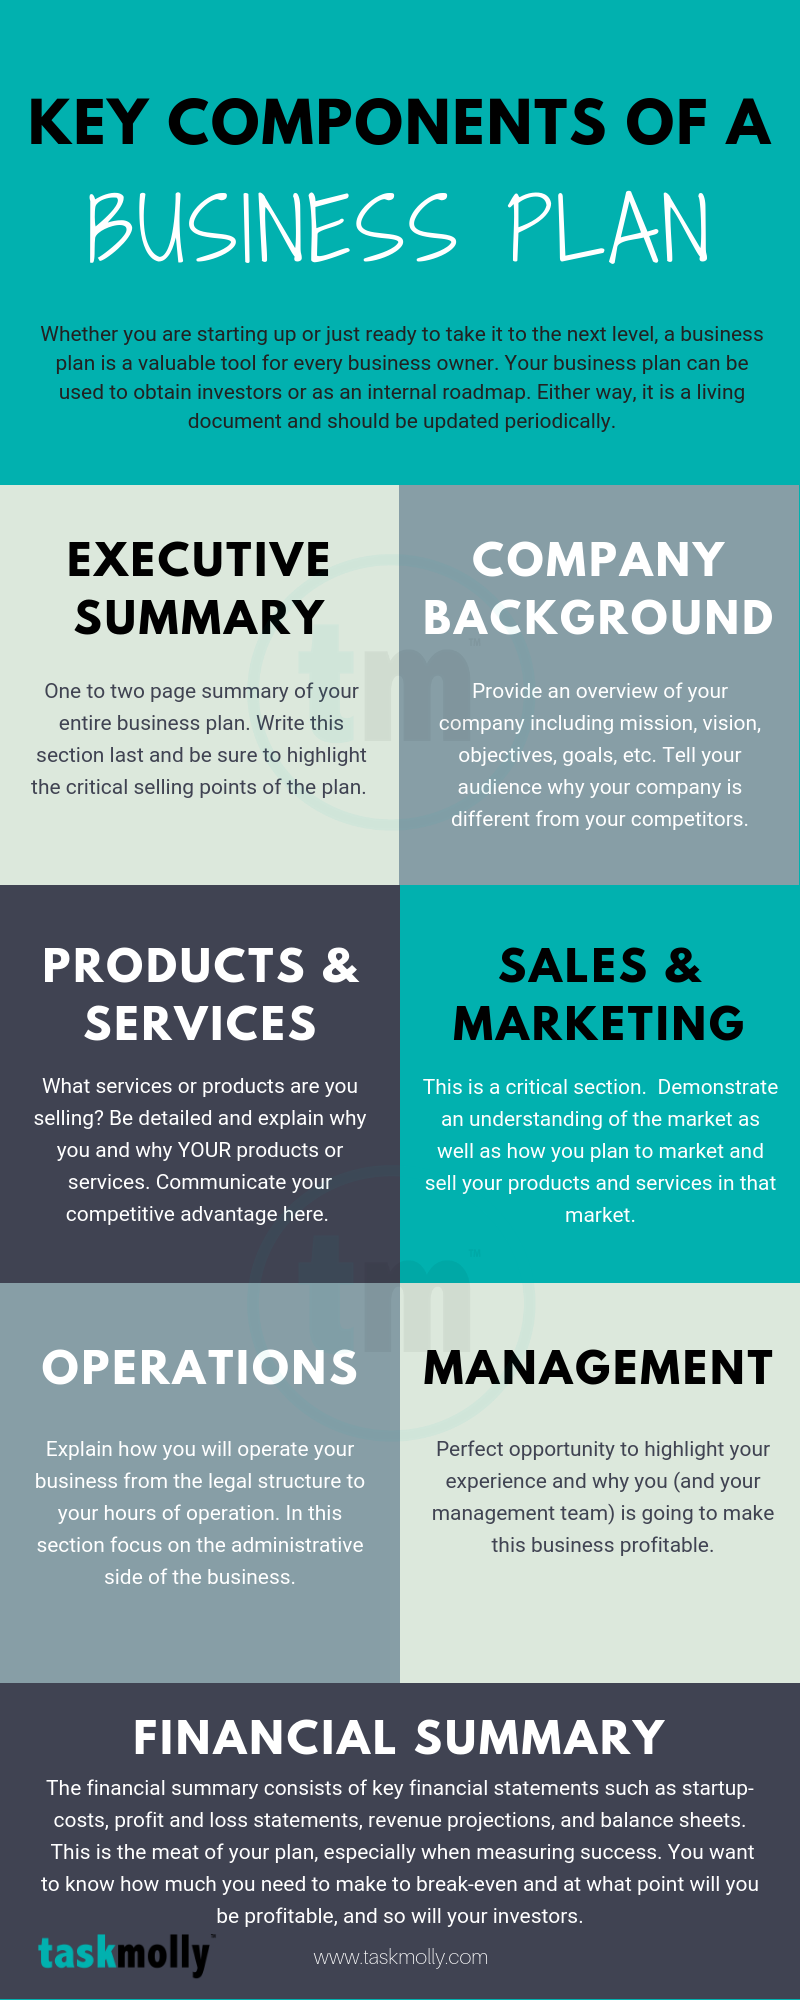 Key Components of a Business Plan ( Infographic)